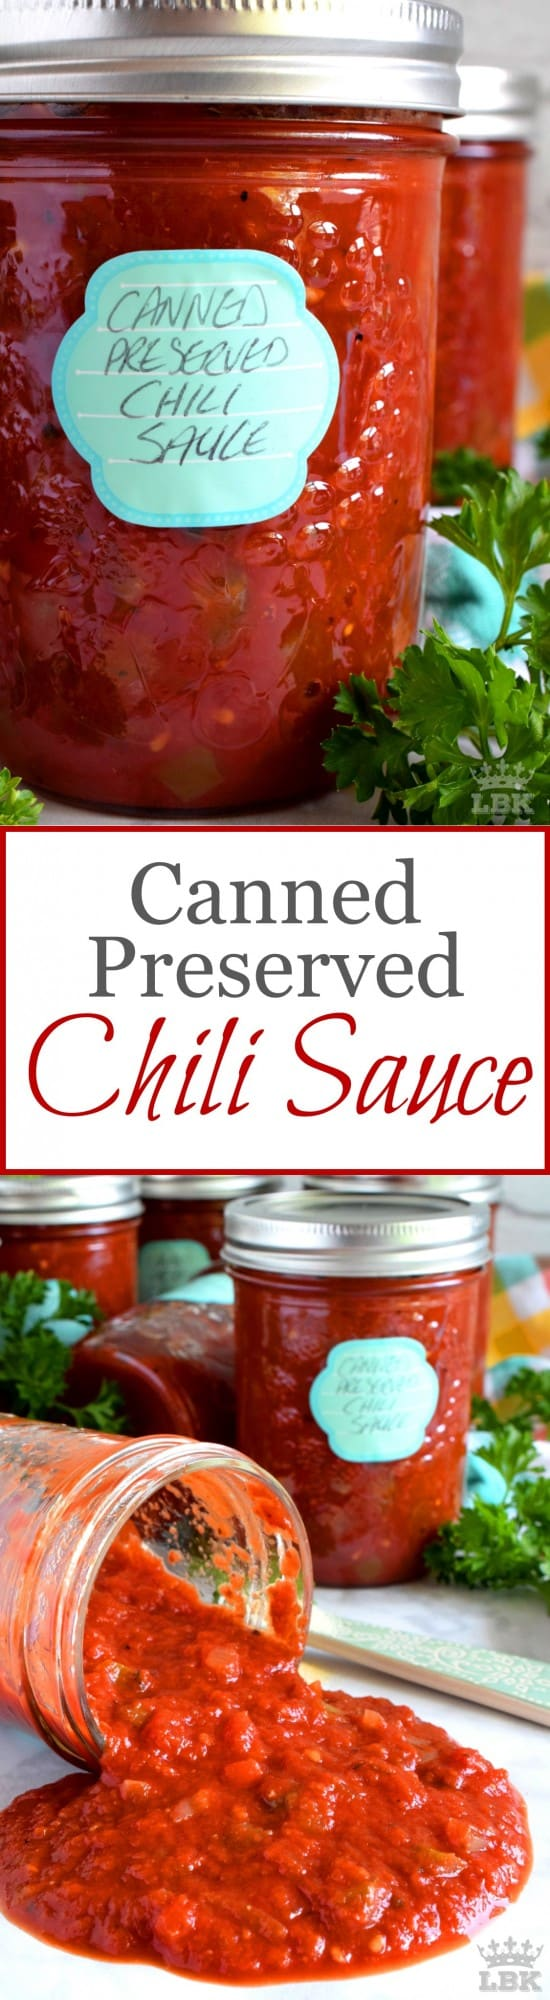 Canned Preserved Chili Sauce - Lord